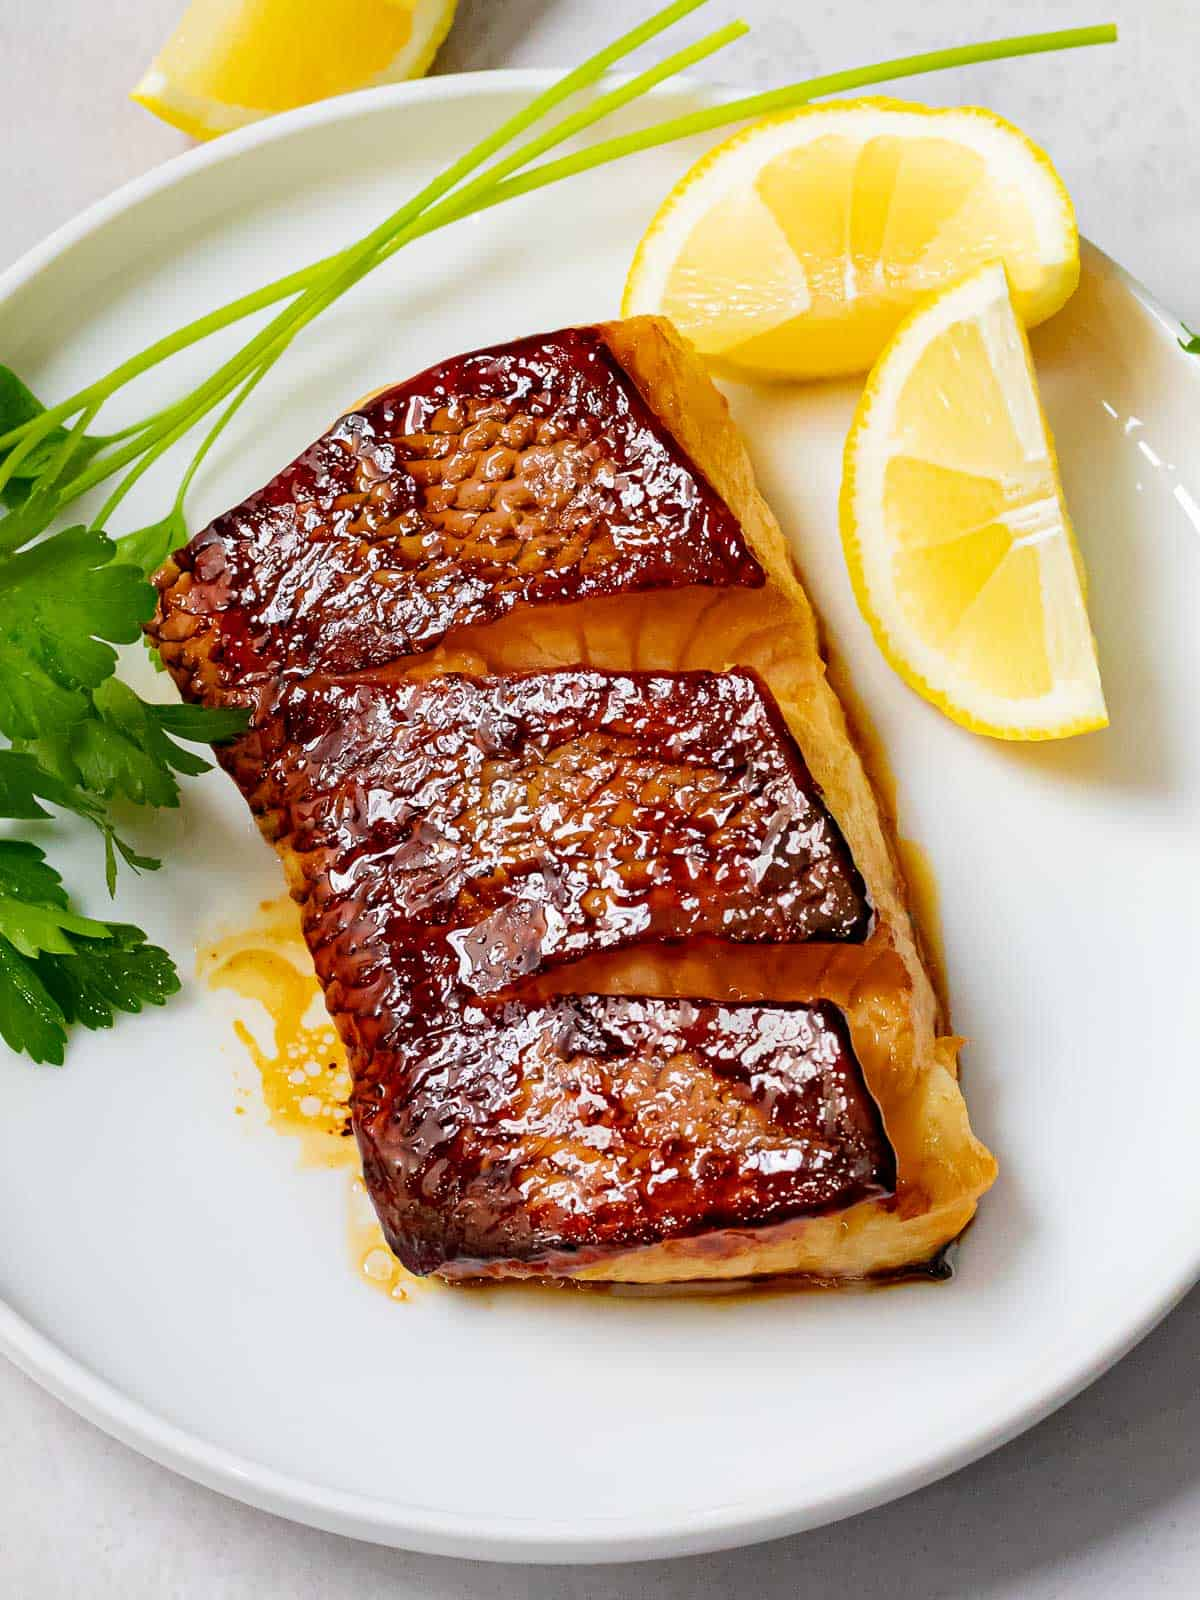 Pan seared sea bass with crispy, golden brown skin on a white plate with lemon wedges and parsley.